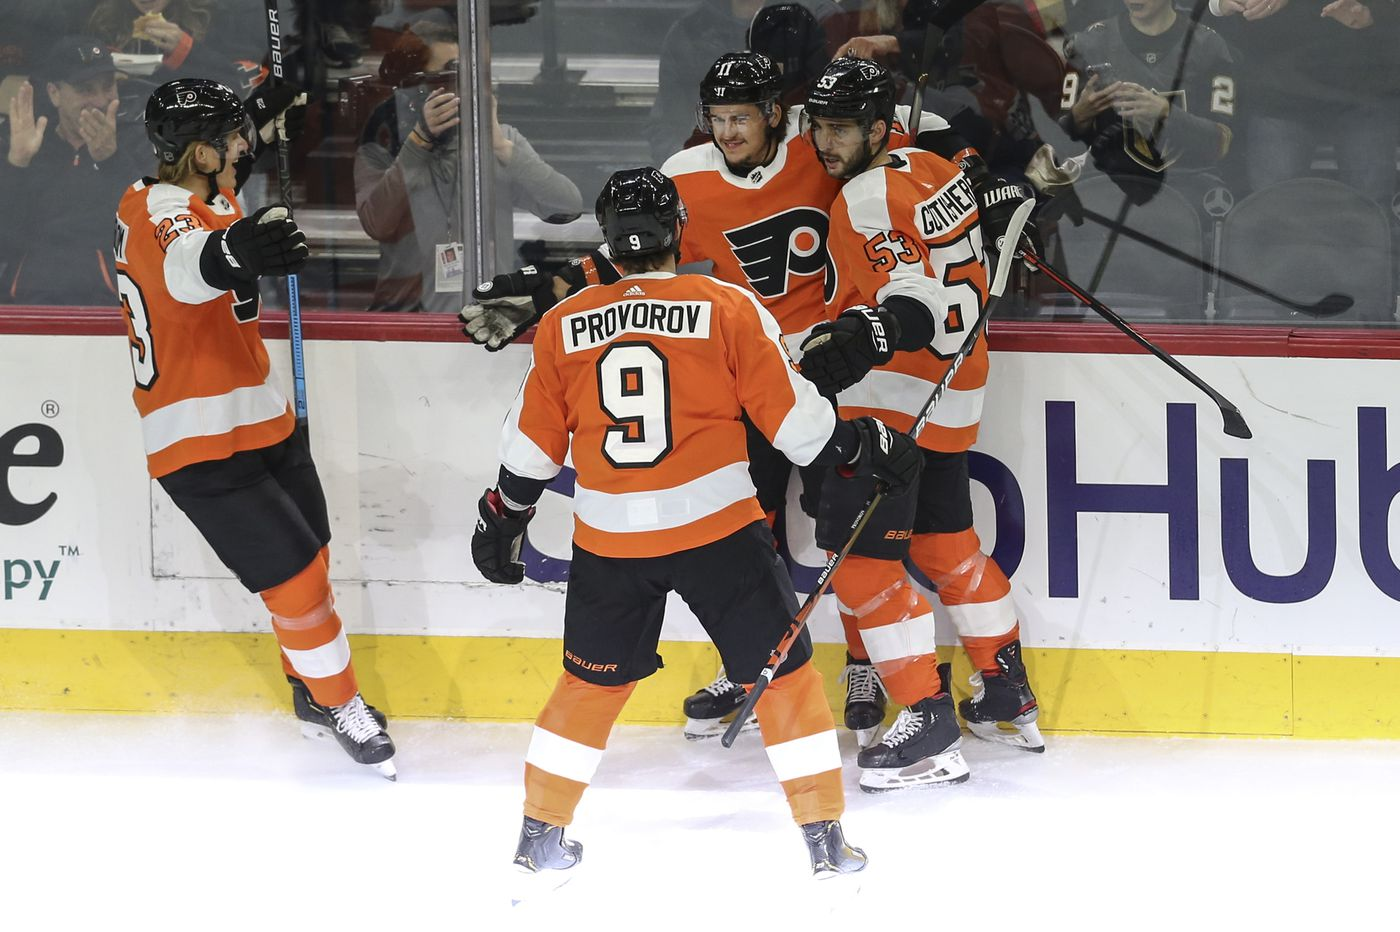 Alain Vigneault happy with Flyers' lines, except for Claude Giroux's unit. 'They have to figure it out.'